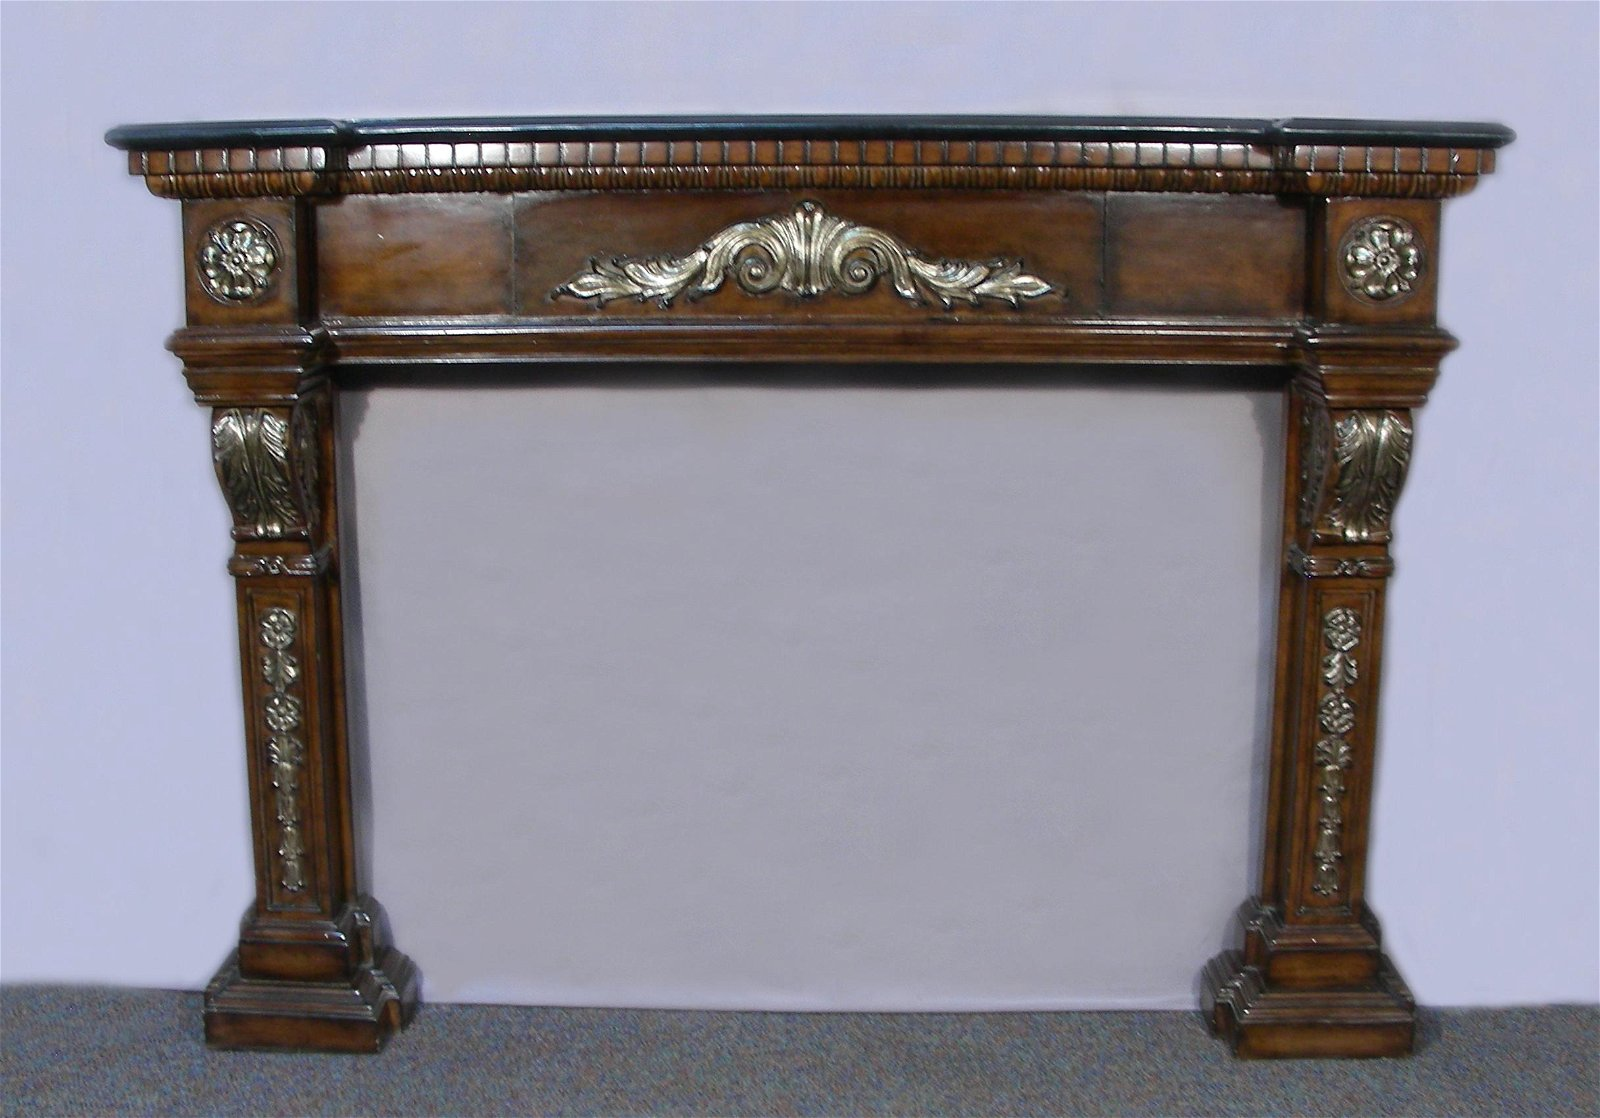 FABULOUS HAND CARVED MAHOGANY FIREPLACE MANTLE